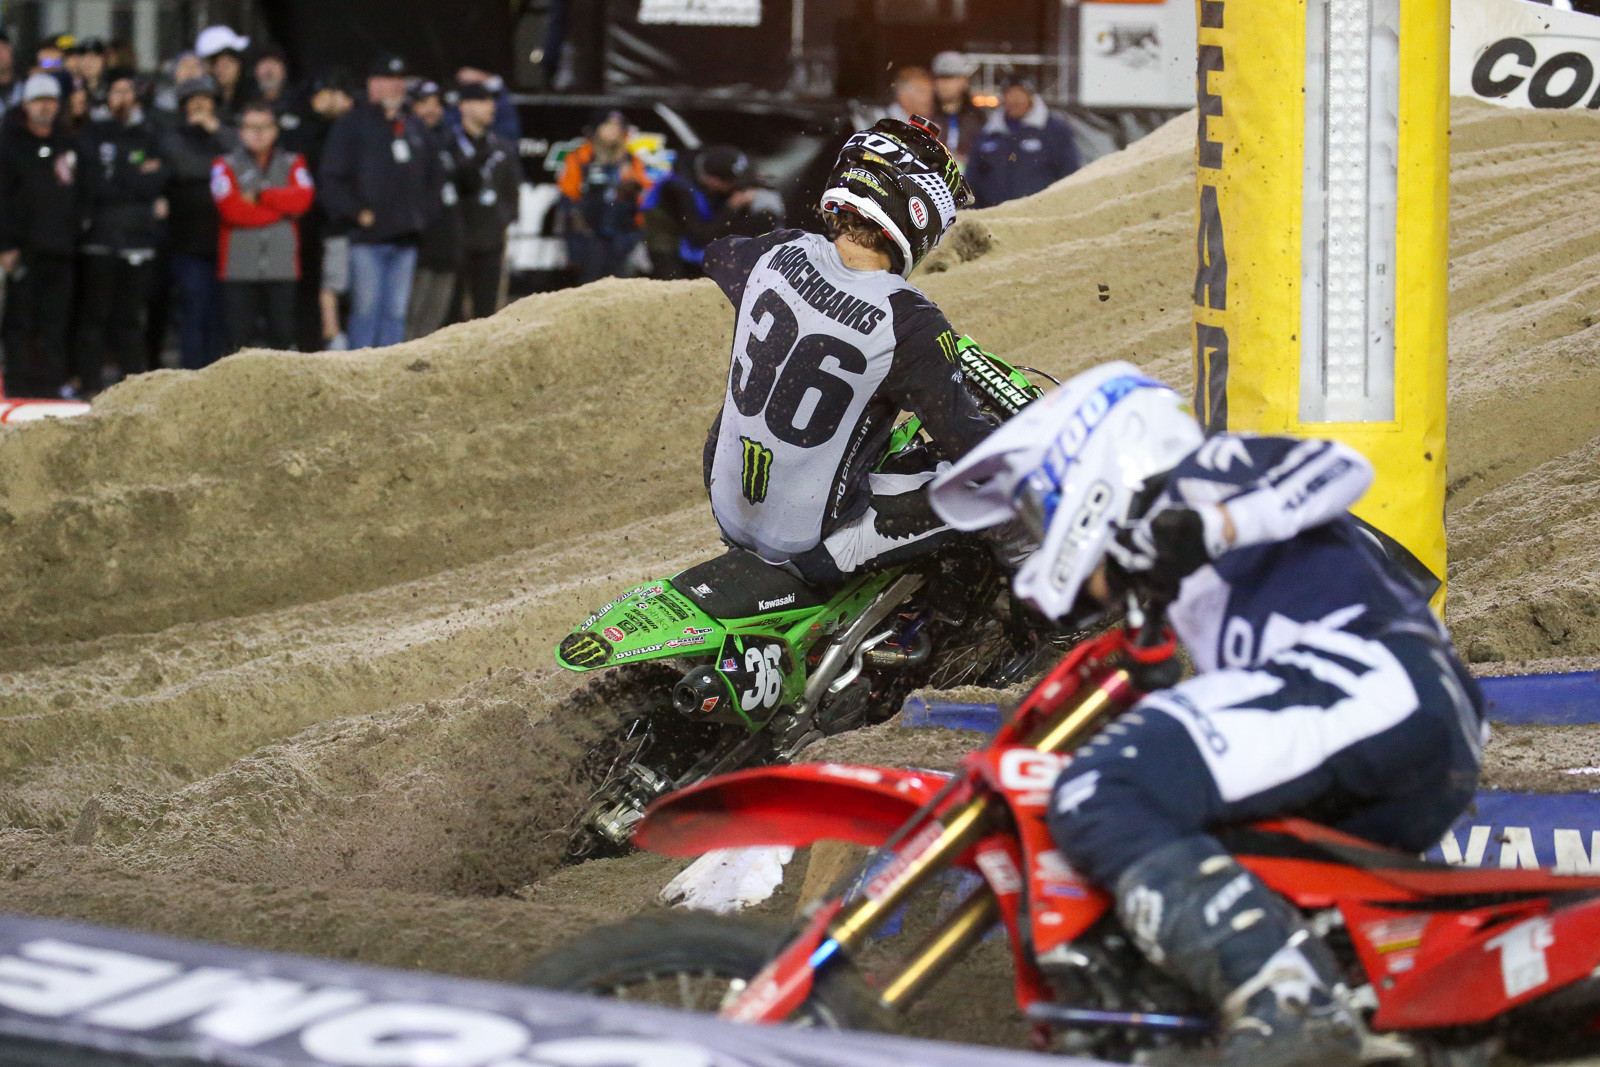 Garrett Marchbanks (with Chase Sexton in hot pursuit) late in the 250 main event.